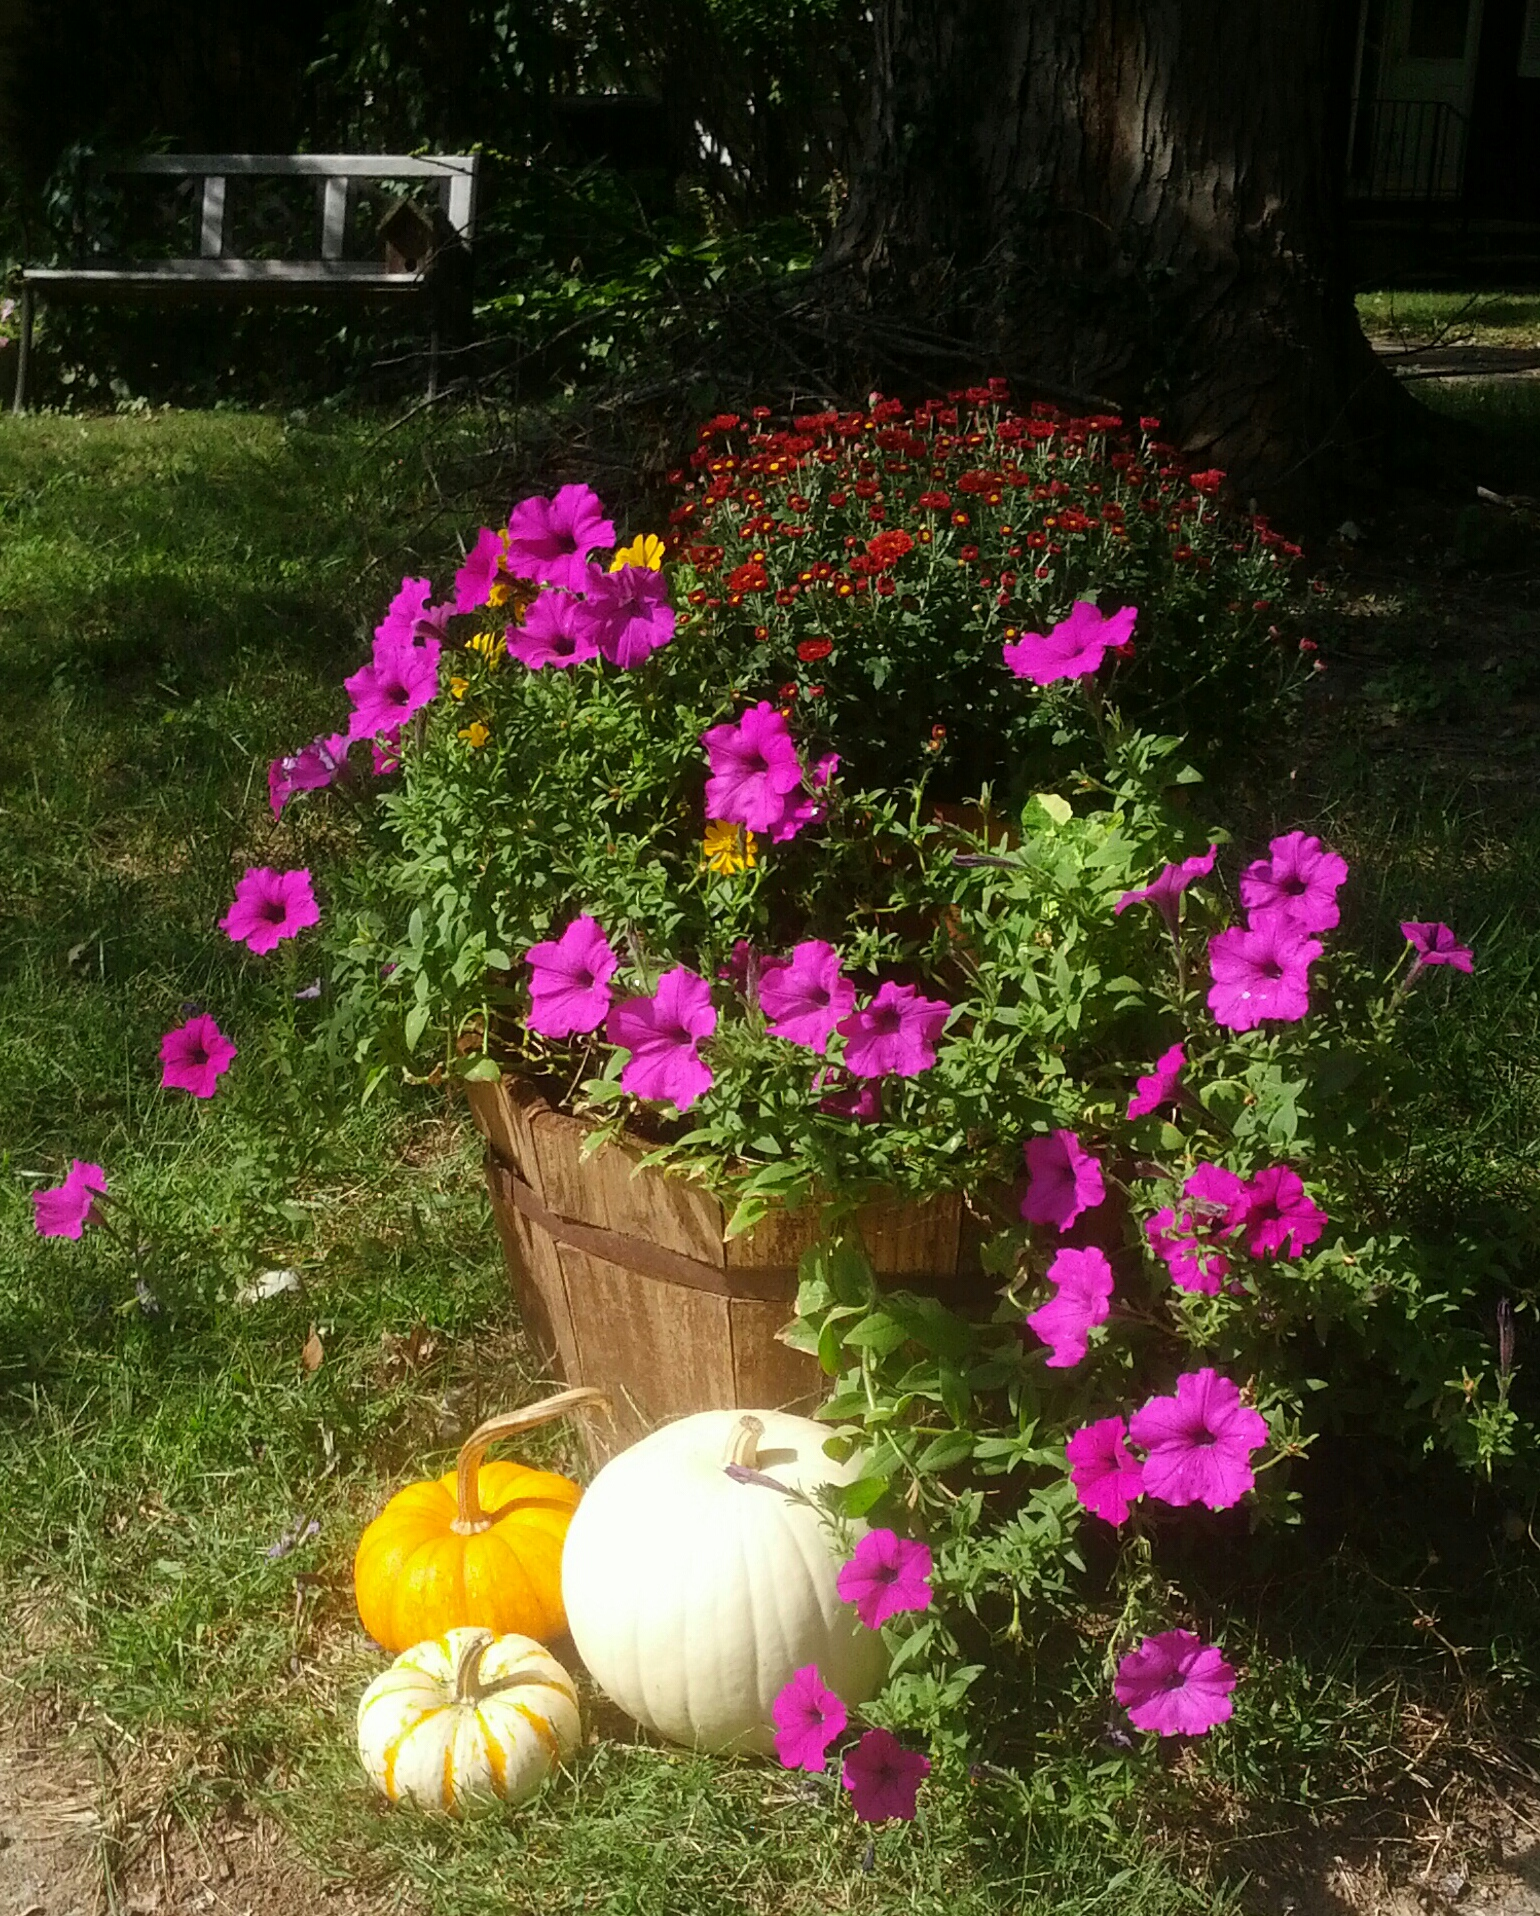 Fall cedar planter with purple petunias and red mums. Autumn flowers accented by white and orange pumpkins. Outdoor decorating. Country, cottage style rustic decor.